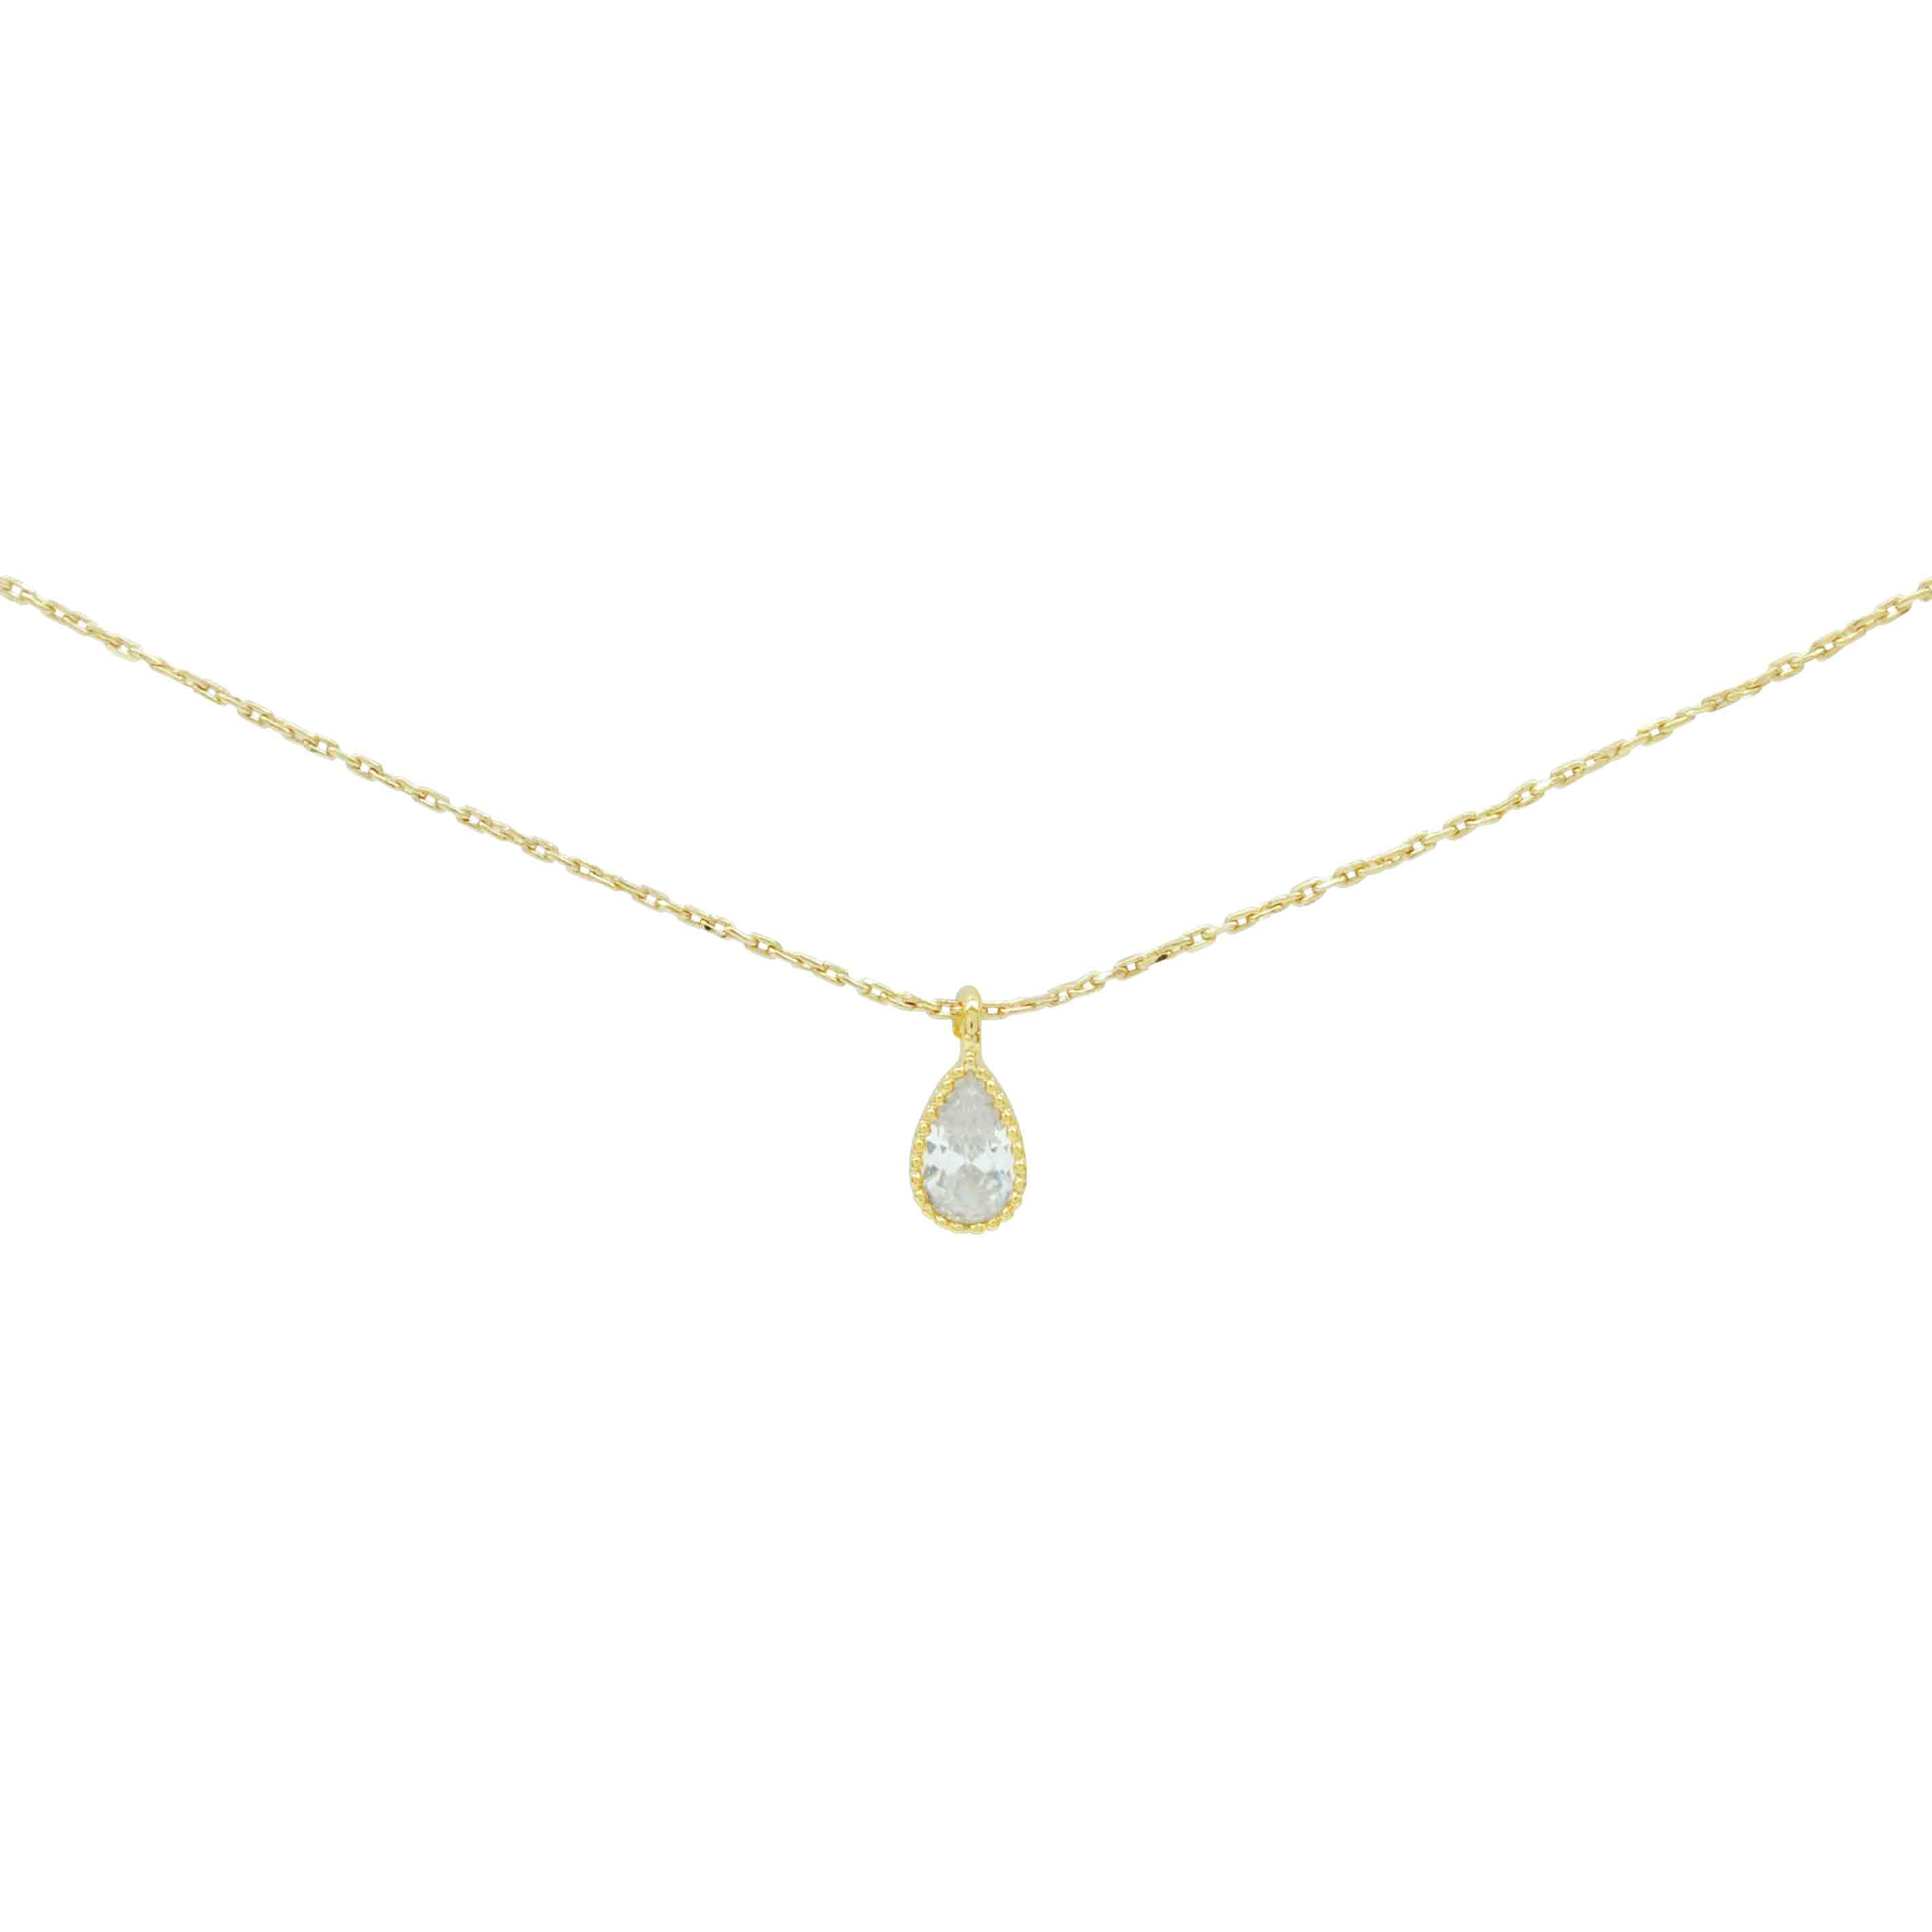 NECKLACE-n1500s009画像